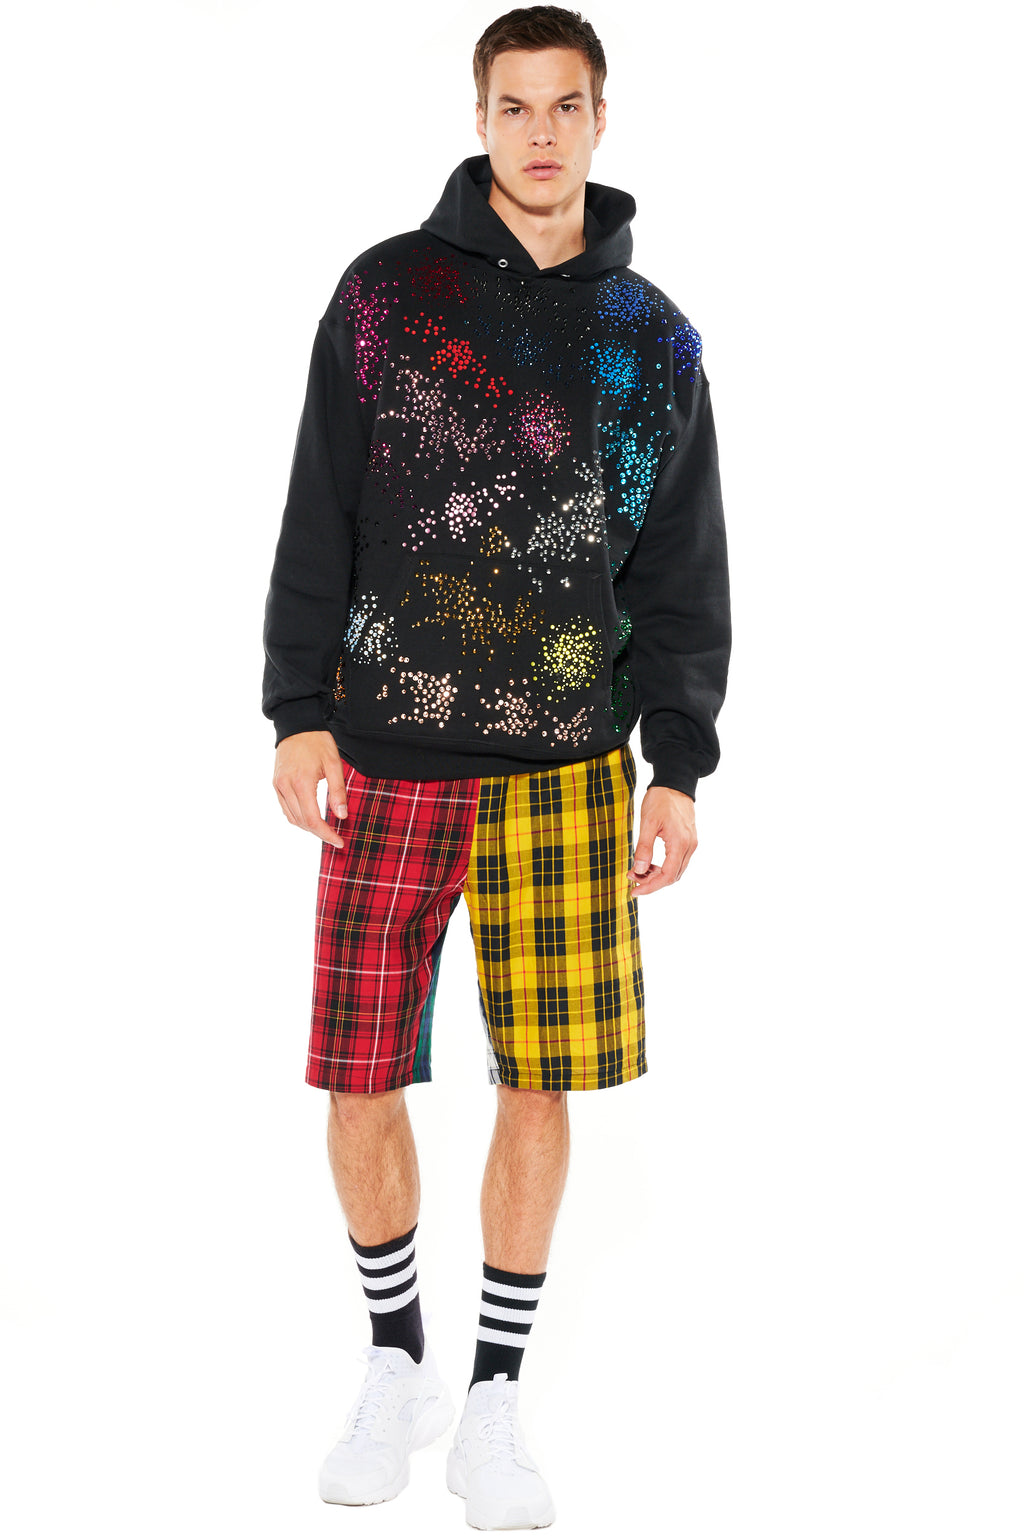 """MO' MONET MO' PROBLEMS"" HOODED SWEATSHIRT - Men's Tops - Libertine"